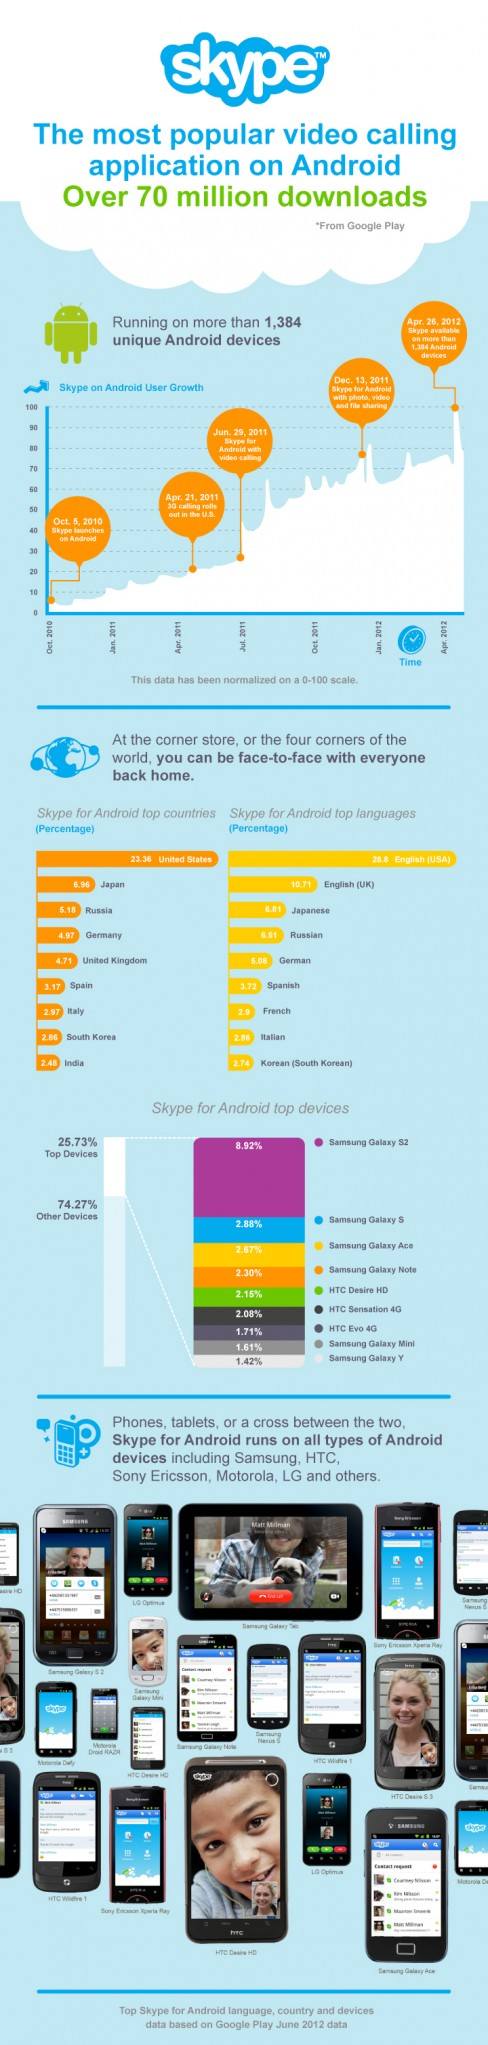 Skype for Android infographic, June 2012